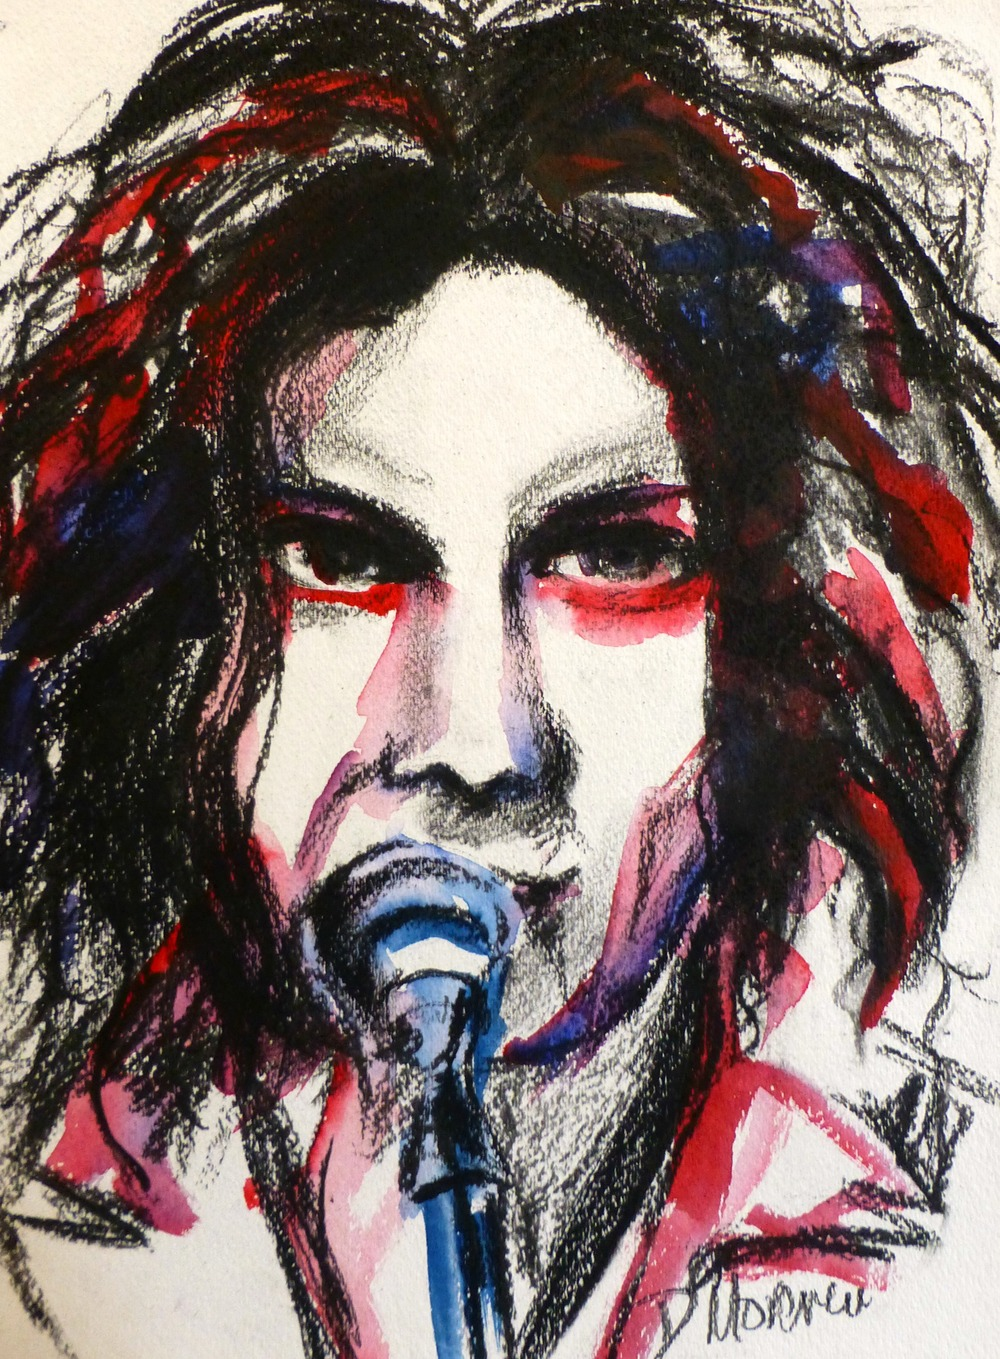 nwm - Sketch - Jack White.jpg